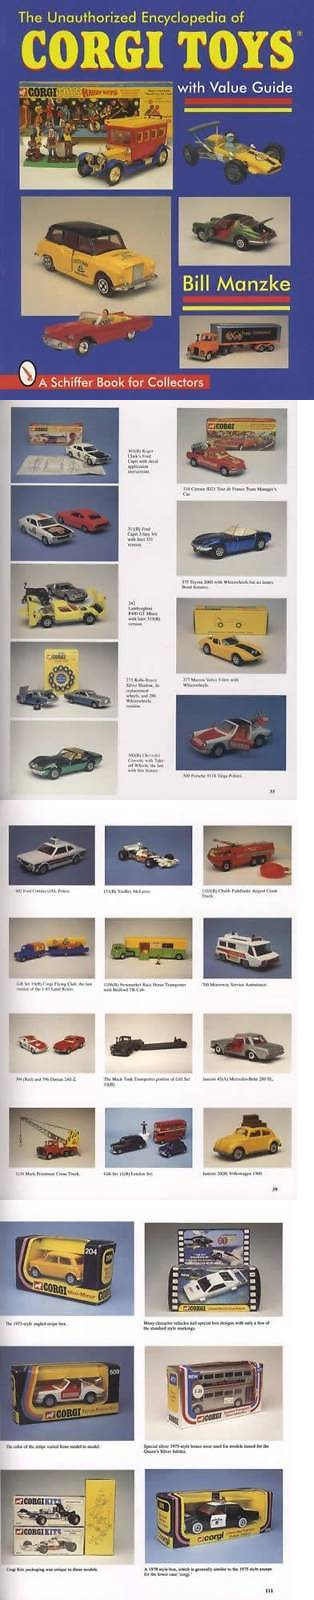 Price Guides and Publications 97093: Vintage Diecast Corgi Cars ...